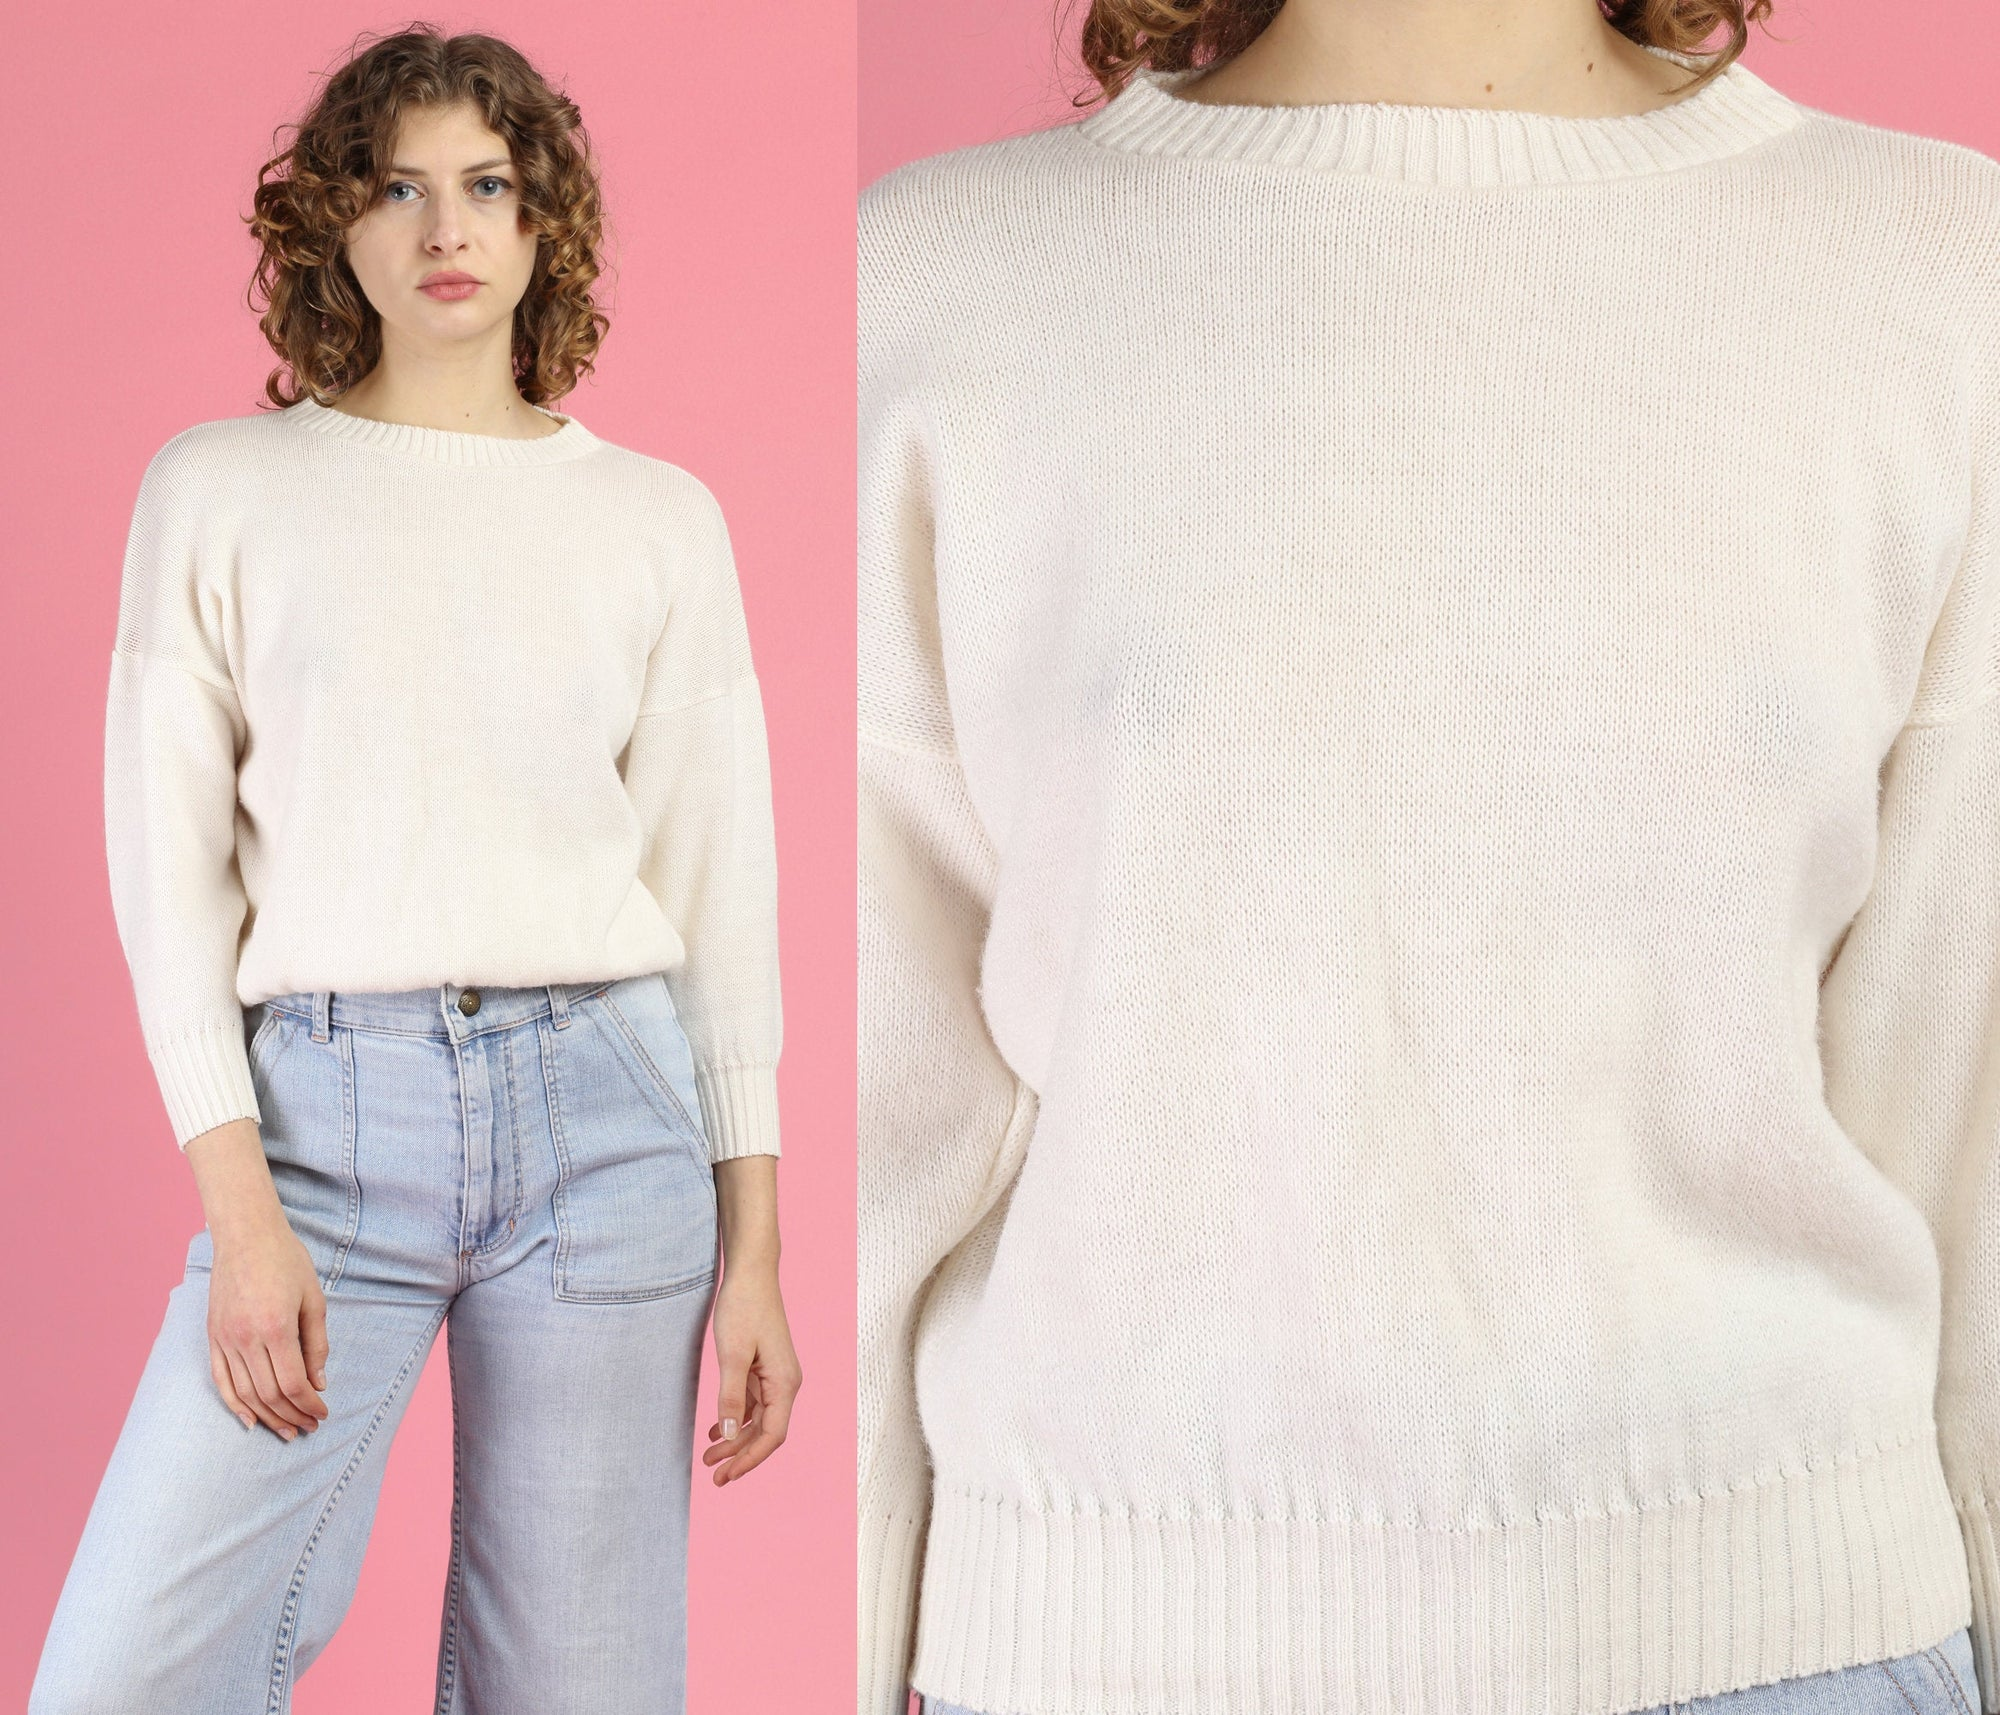 70s Cropped Cream Knit Sweater - Extra Small to Petite Small